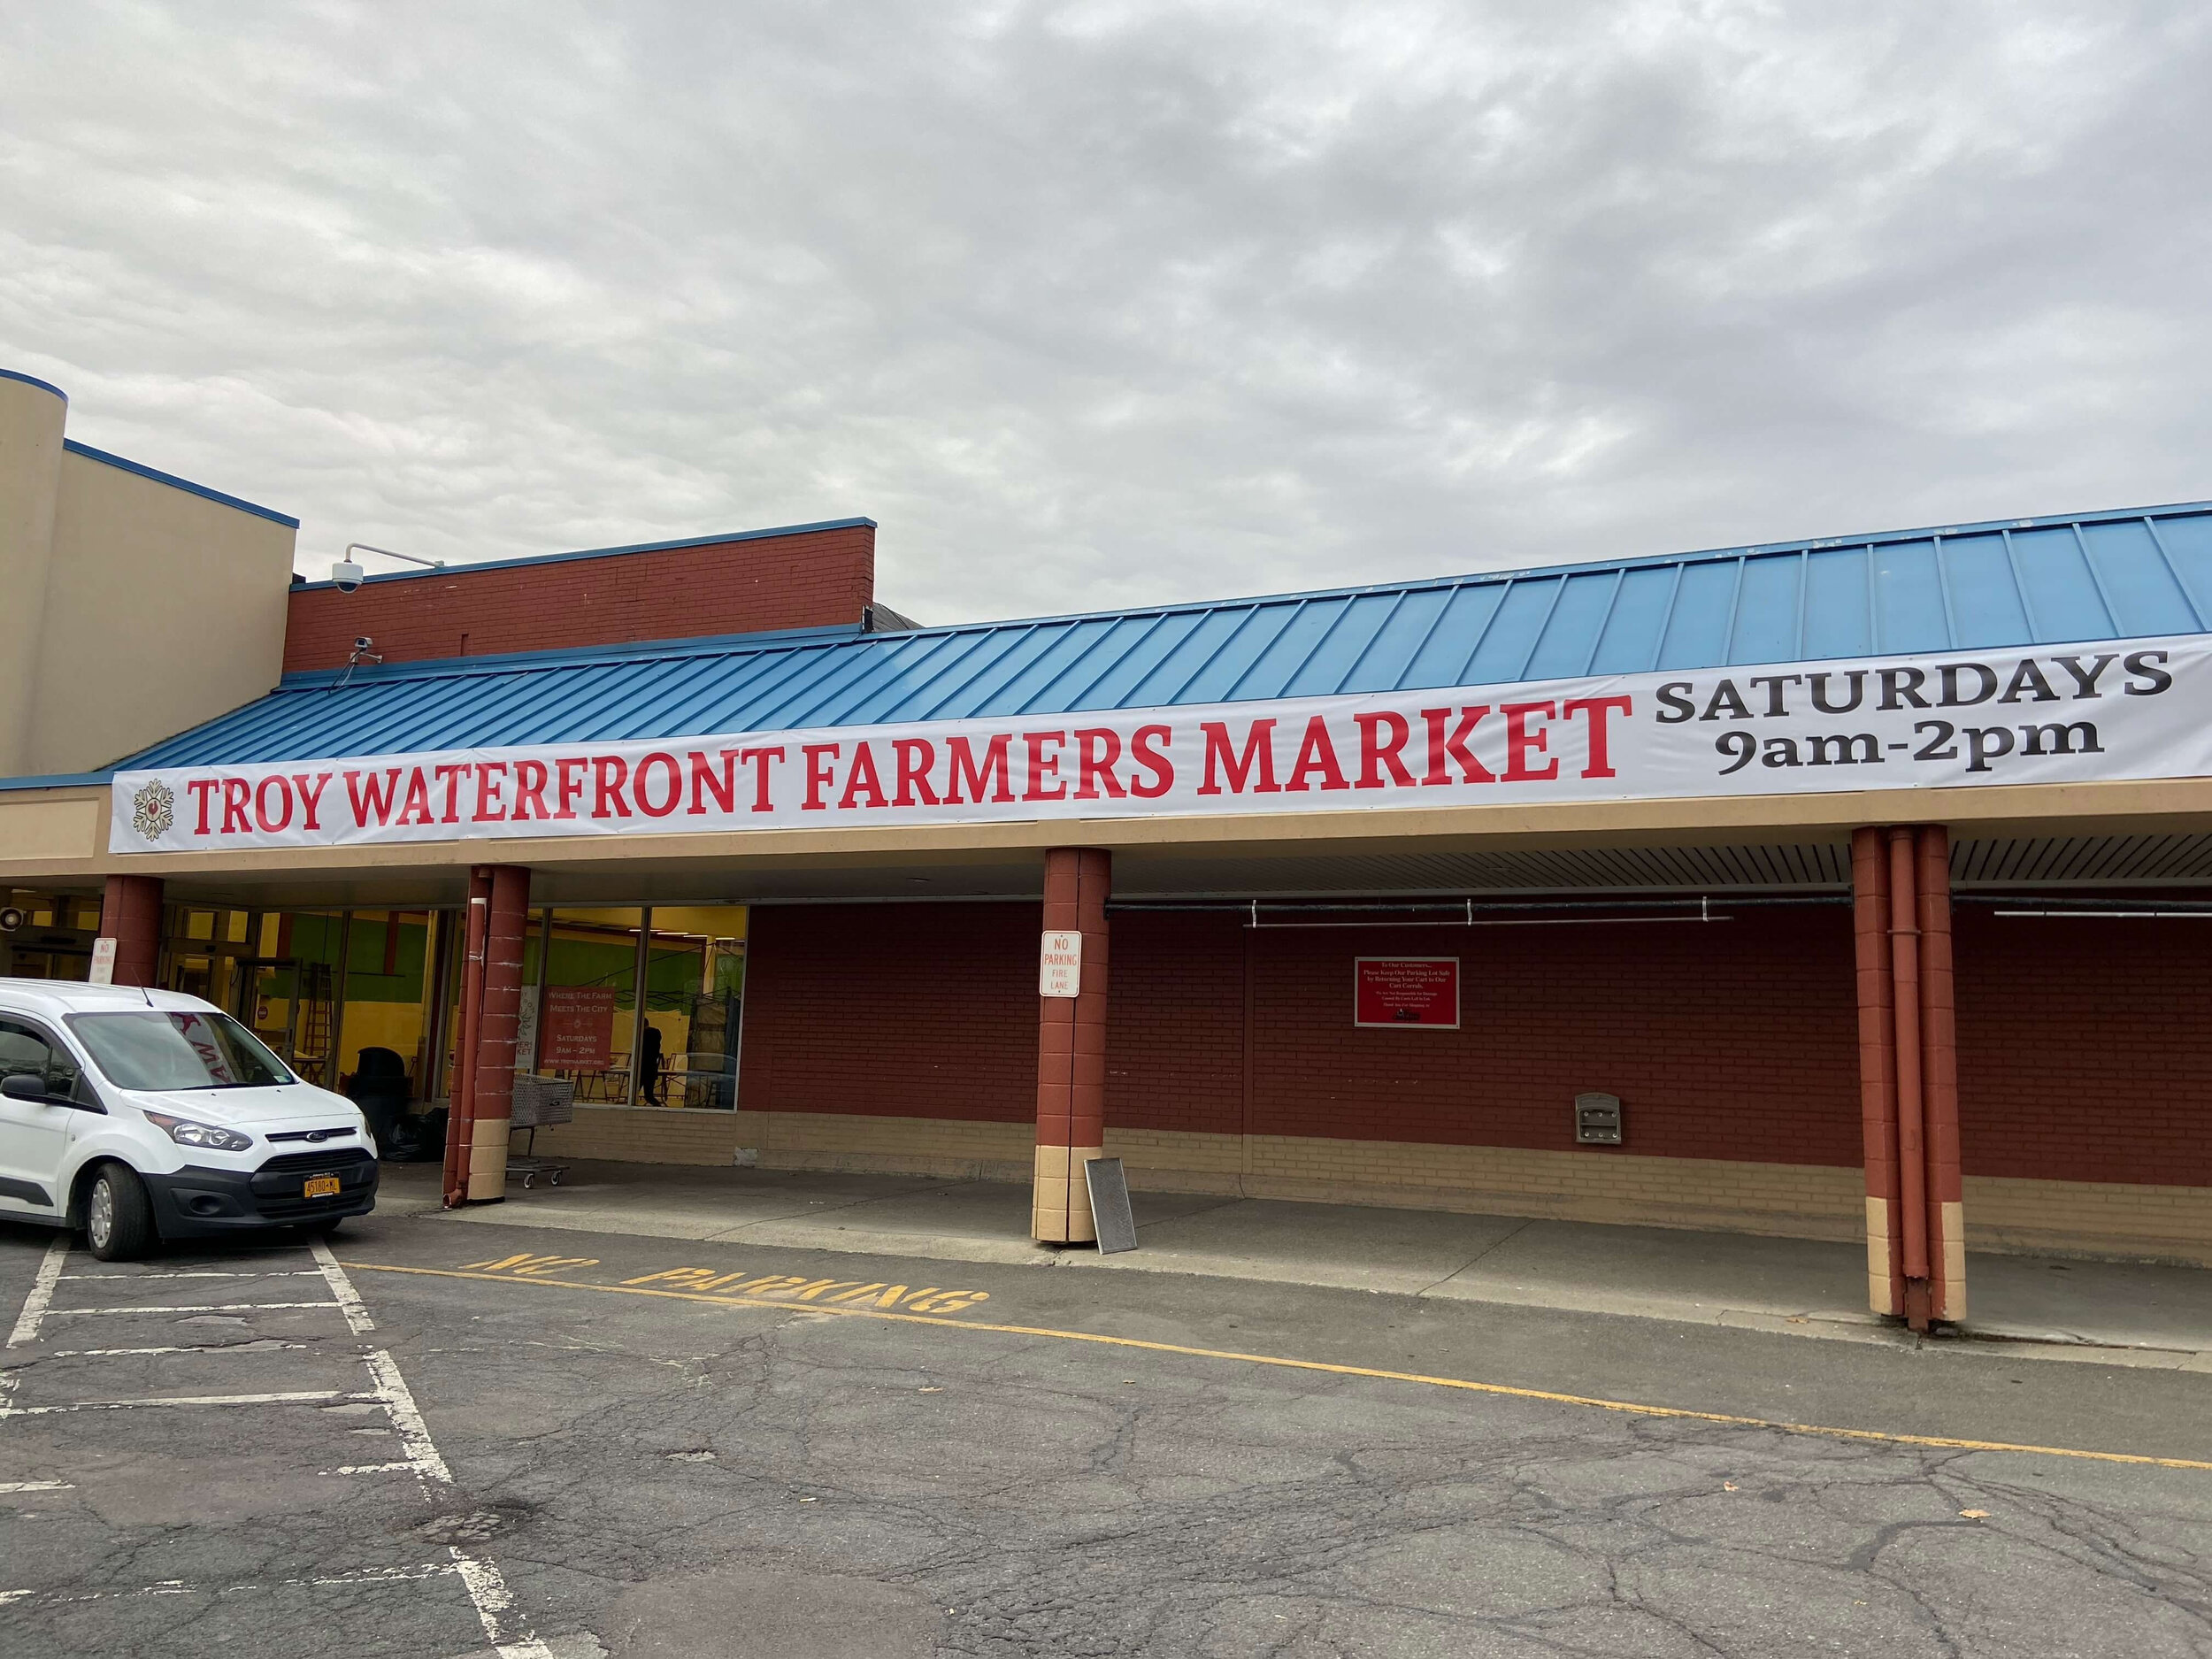 Troy S Indoor Winter Farmers Market Moves To Lansingburgh Troy Farmers Market